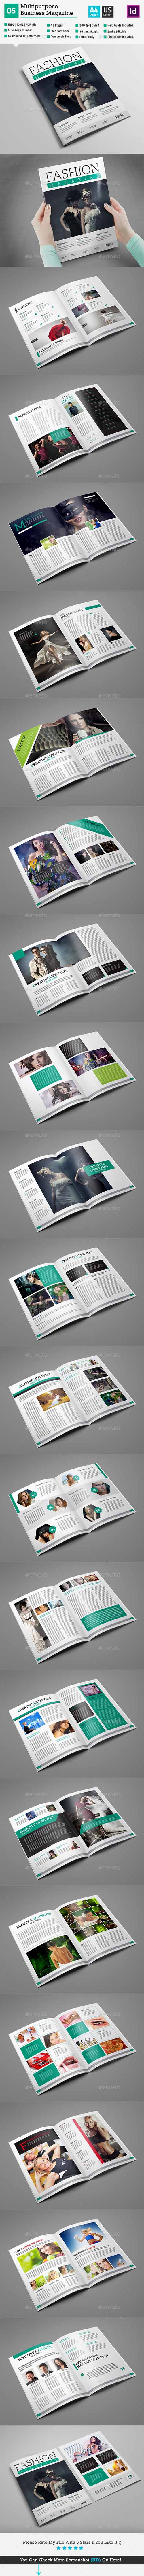 Fashion Magazine Template - InDesign 42 Page V5 10954902